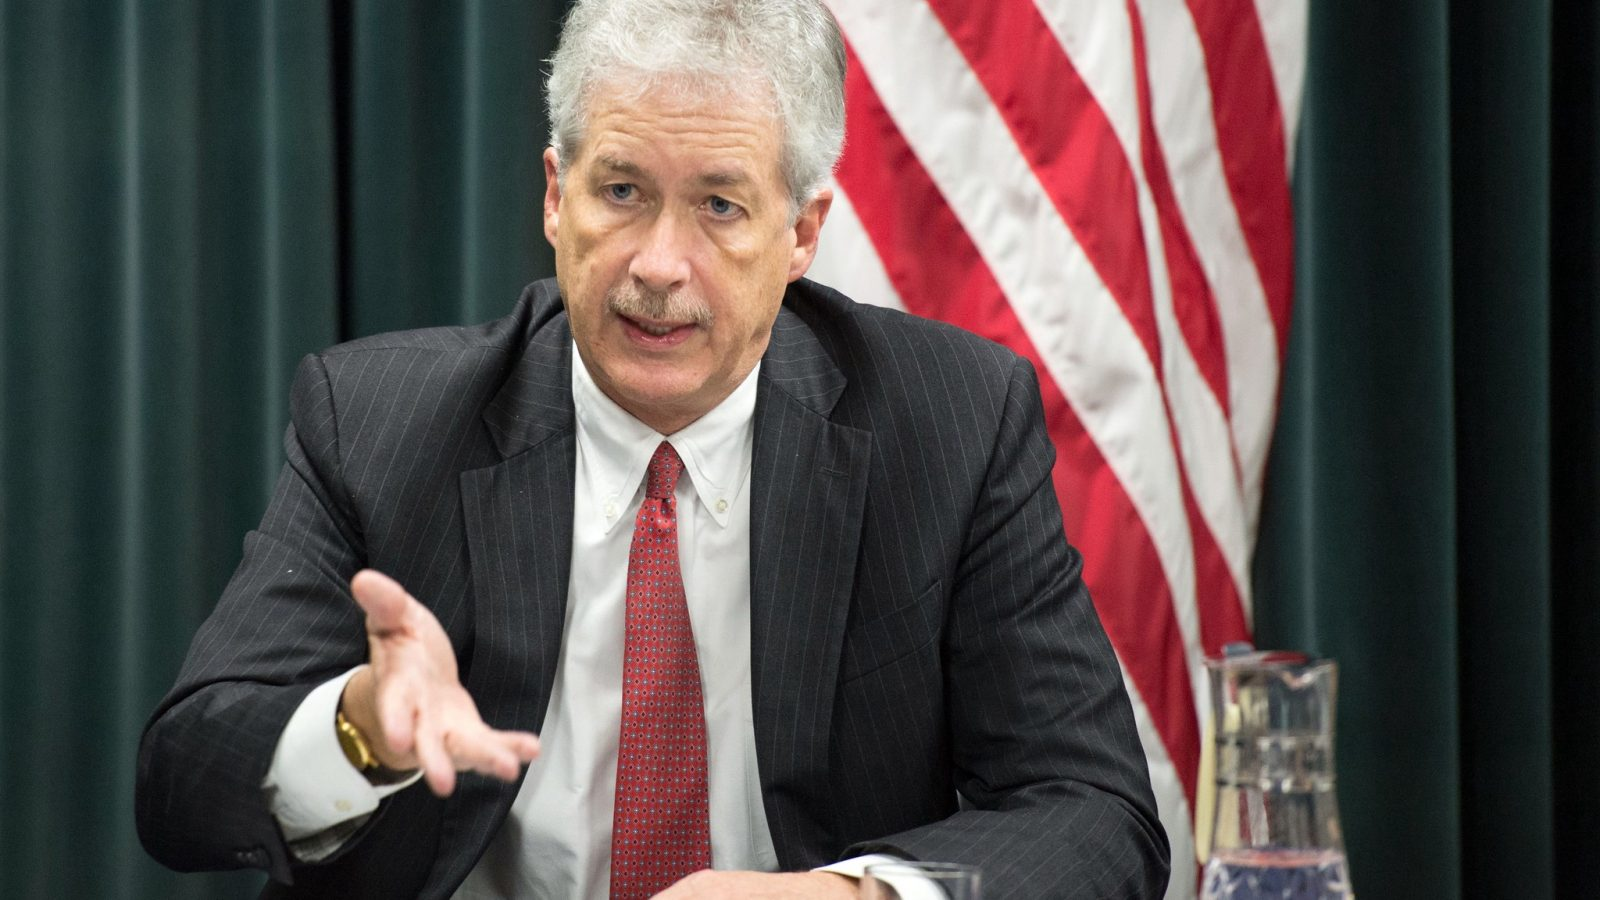 ISD board of advisers member Ambassador William J. Burns addresses the media during a visit to Tokyo, Japan, in 2014. Ambassador Burns served as deputy secretary of state during the Obama administration. (Image: State Department/Flickr)